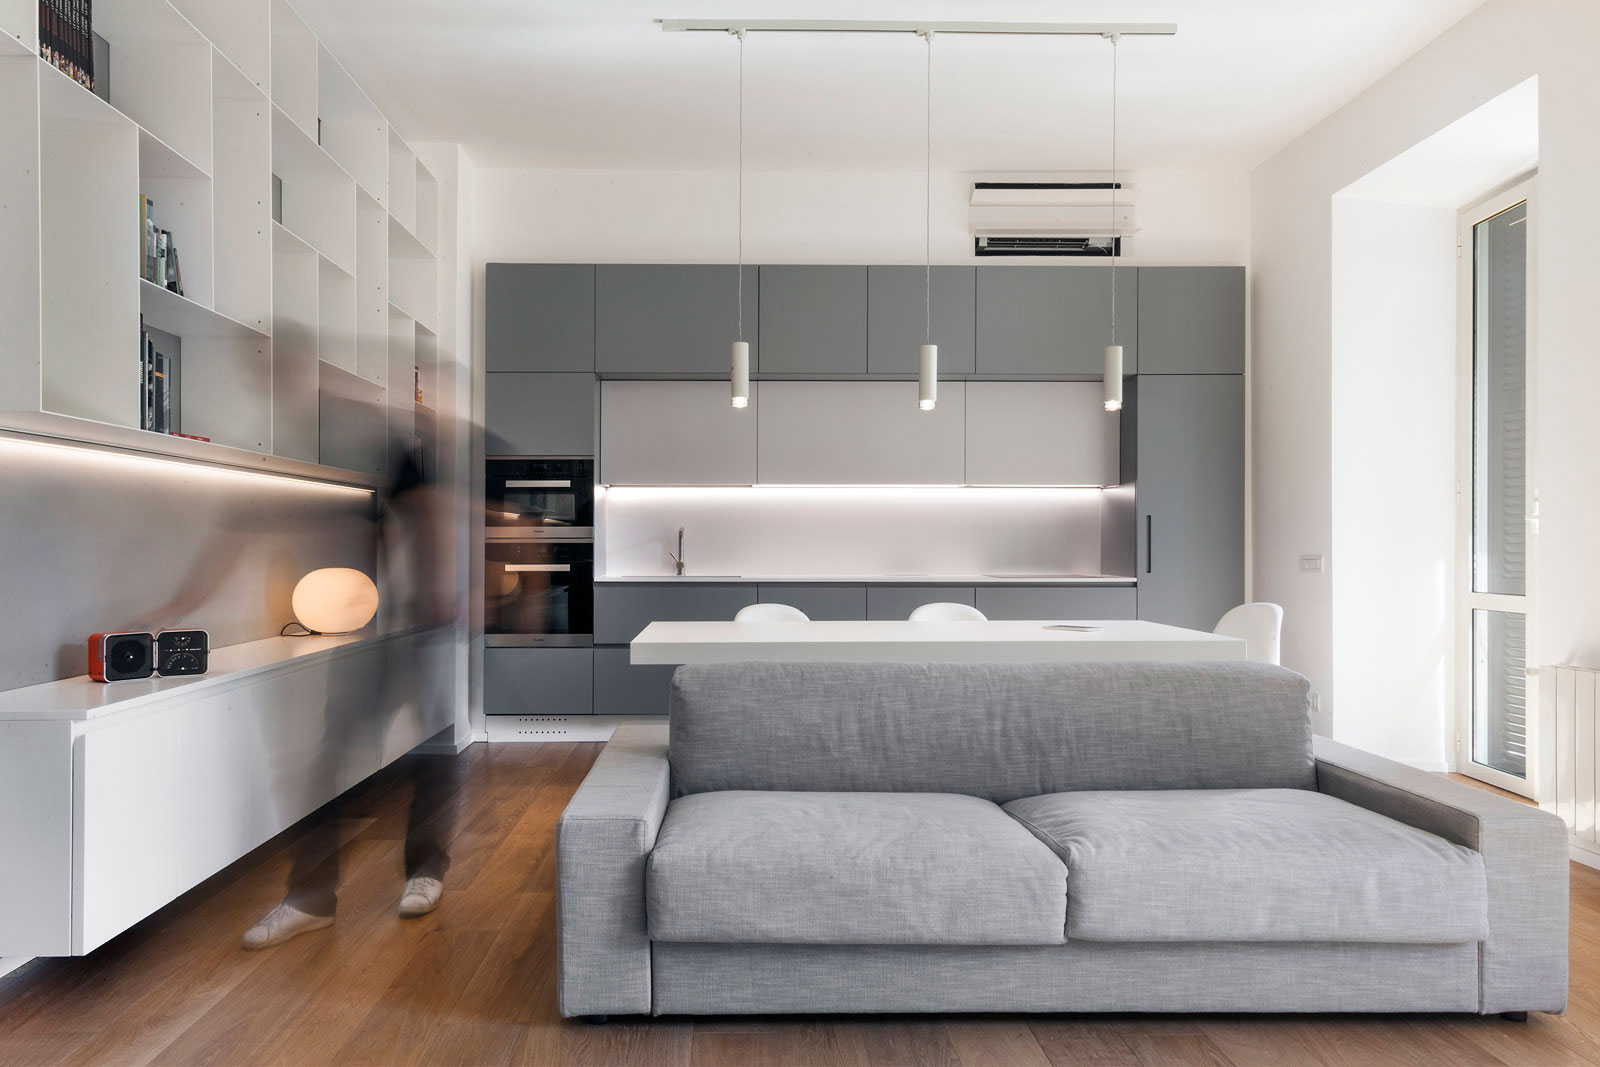 Luca Peralta Studio Design A Minimalist Apartment In The